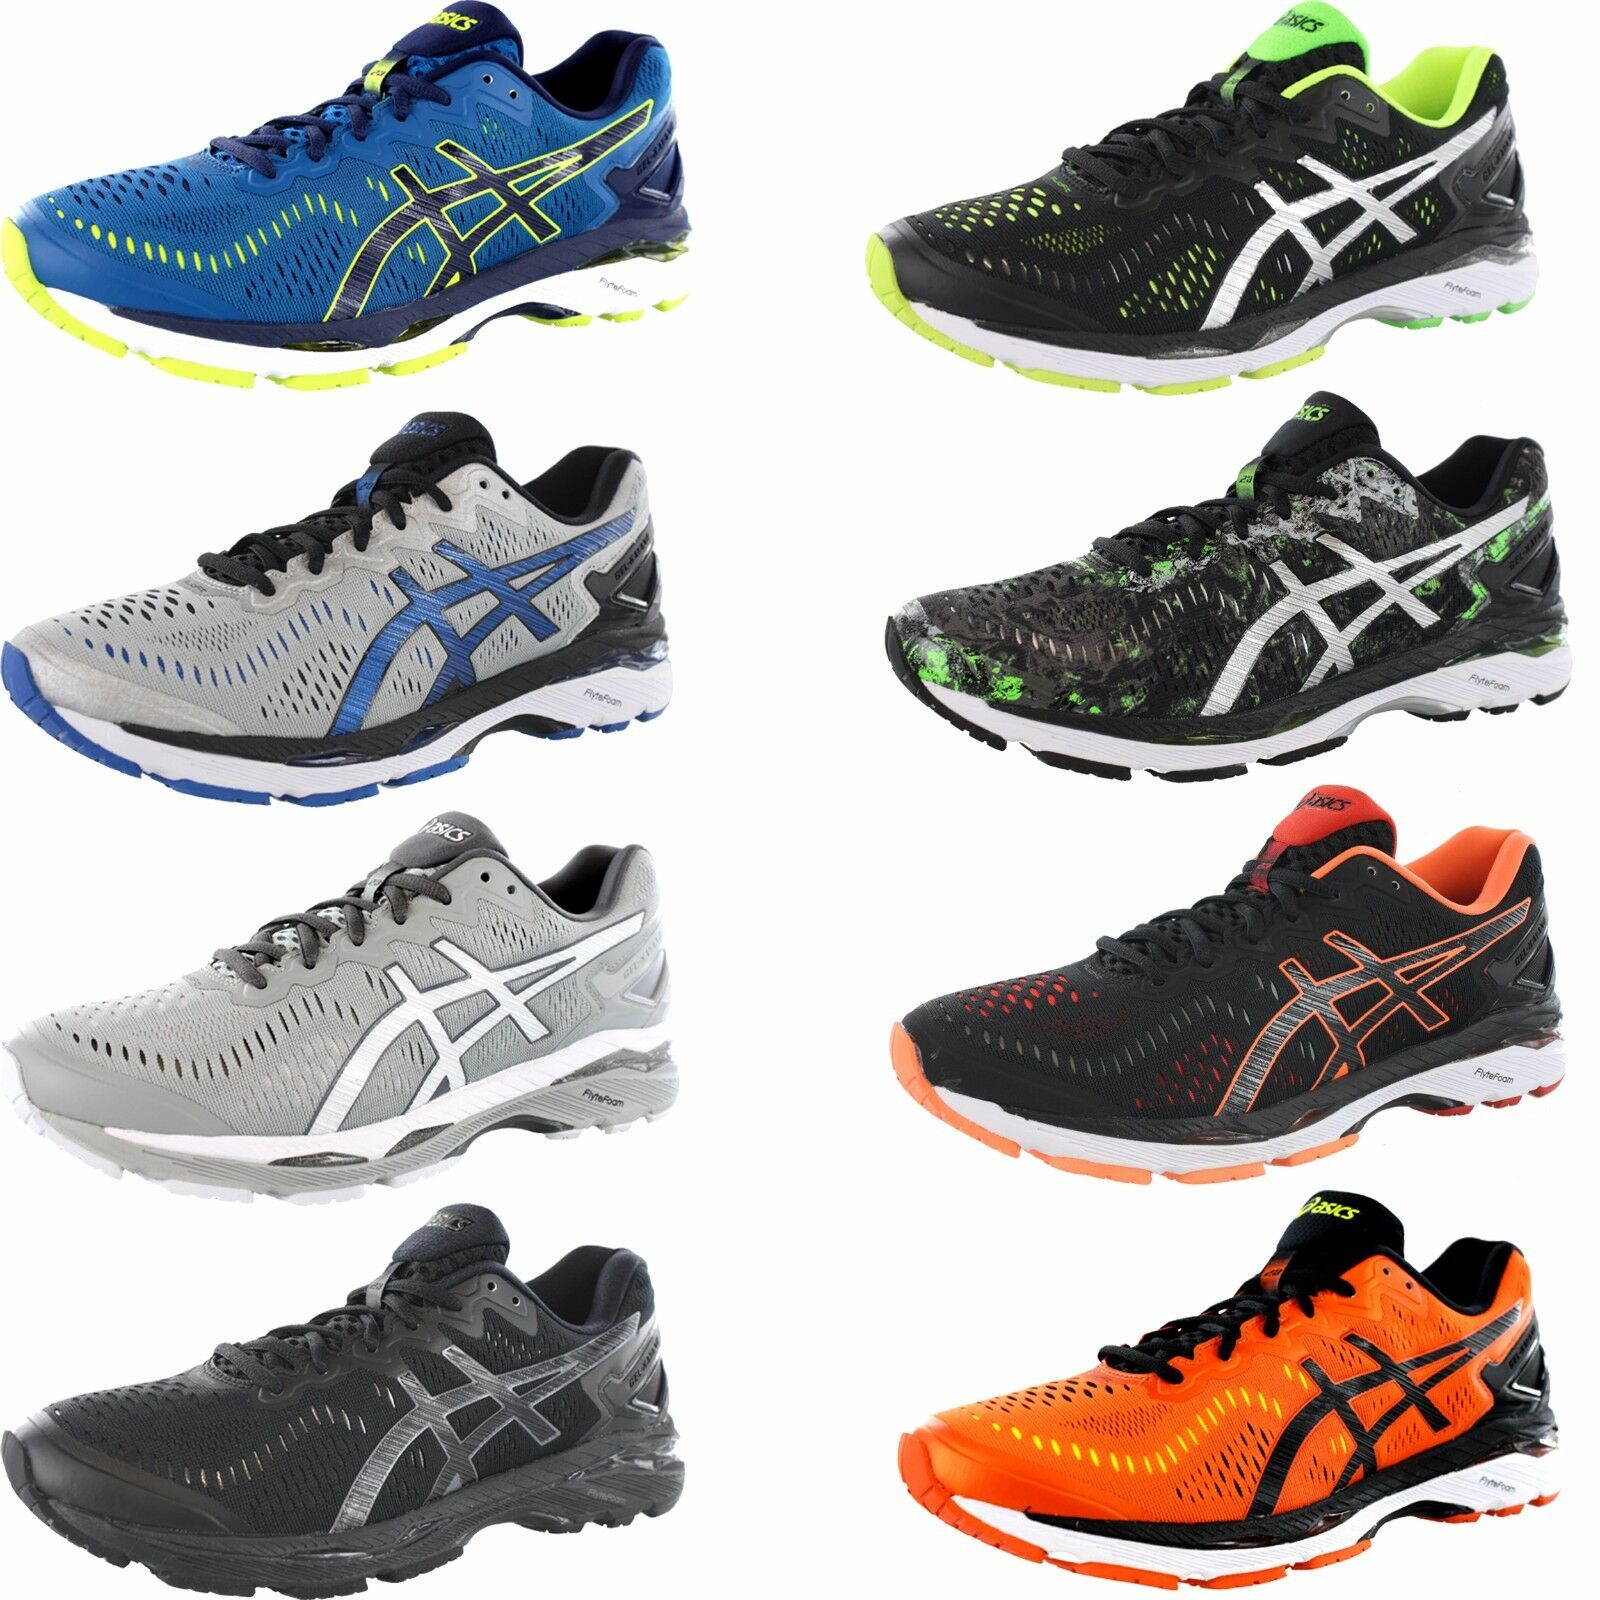 ASICS Gel-kayano 23 Mens Gray Mesh Athletic Lace up Running Shoes 9 ... f18b15734af4b